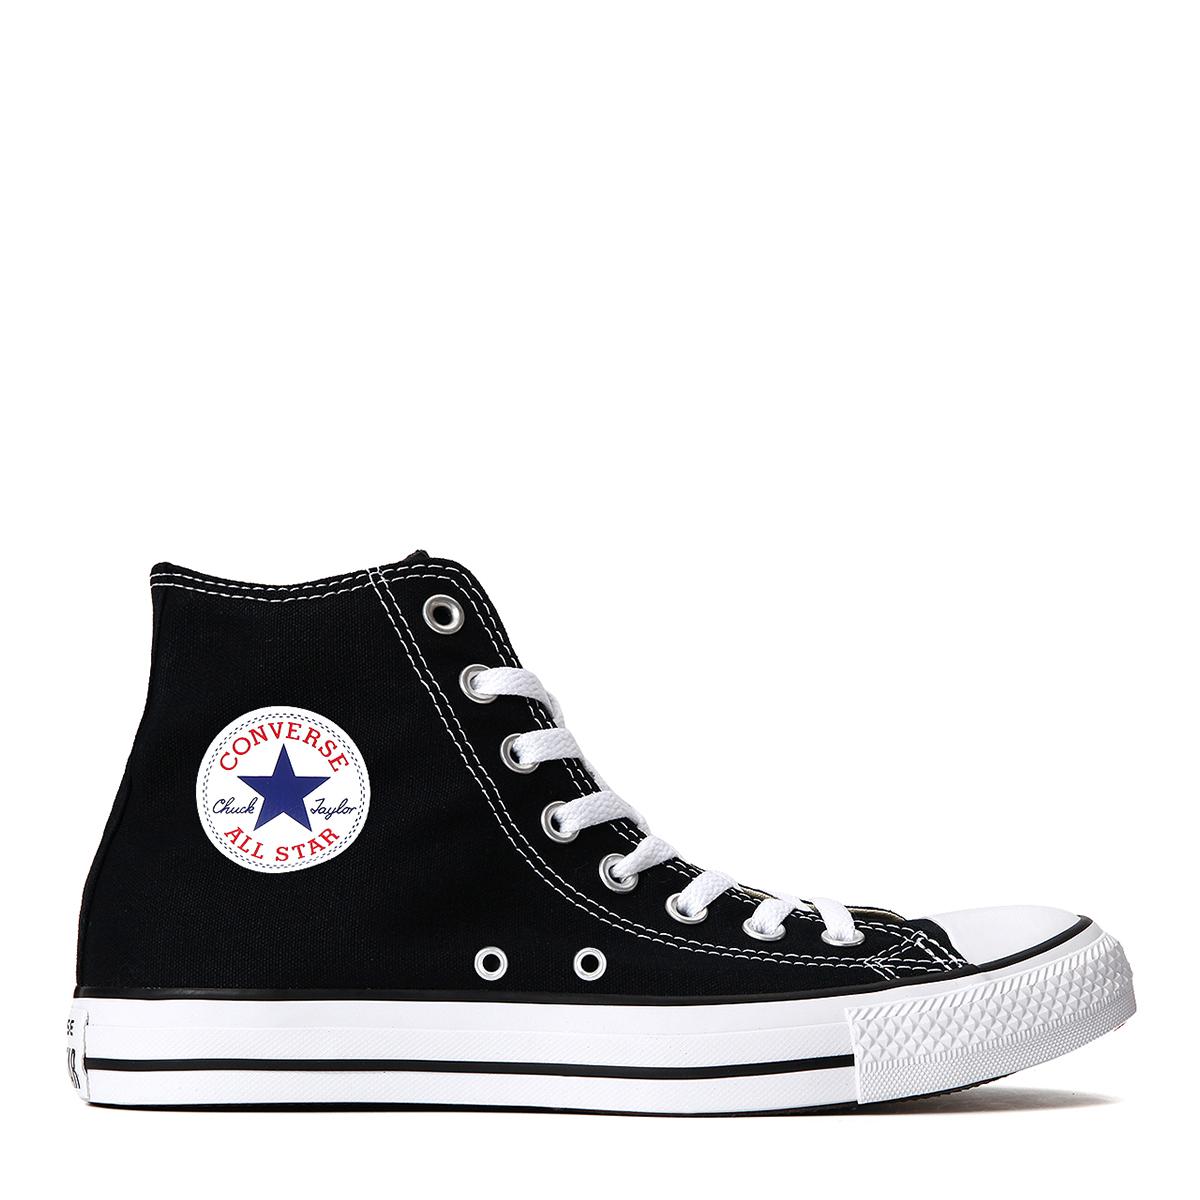 Converse All Star High Top Sneakers M9160 Black by